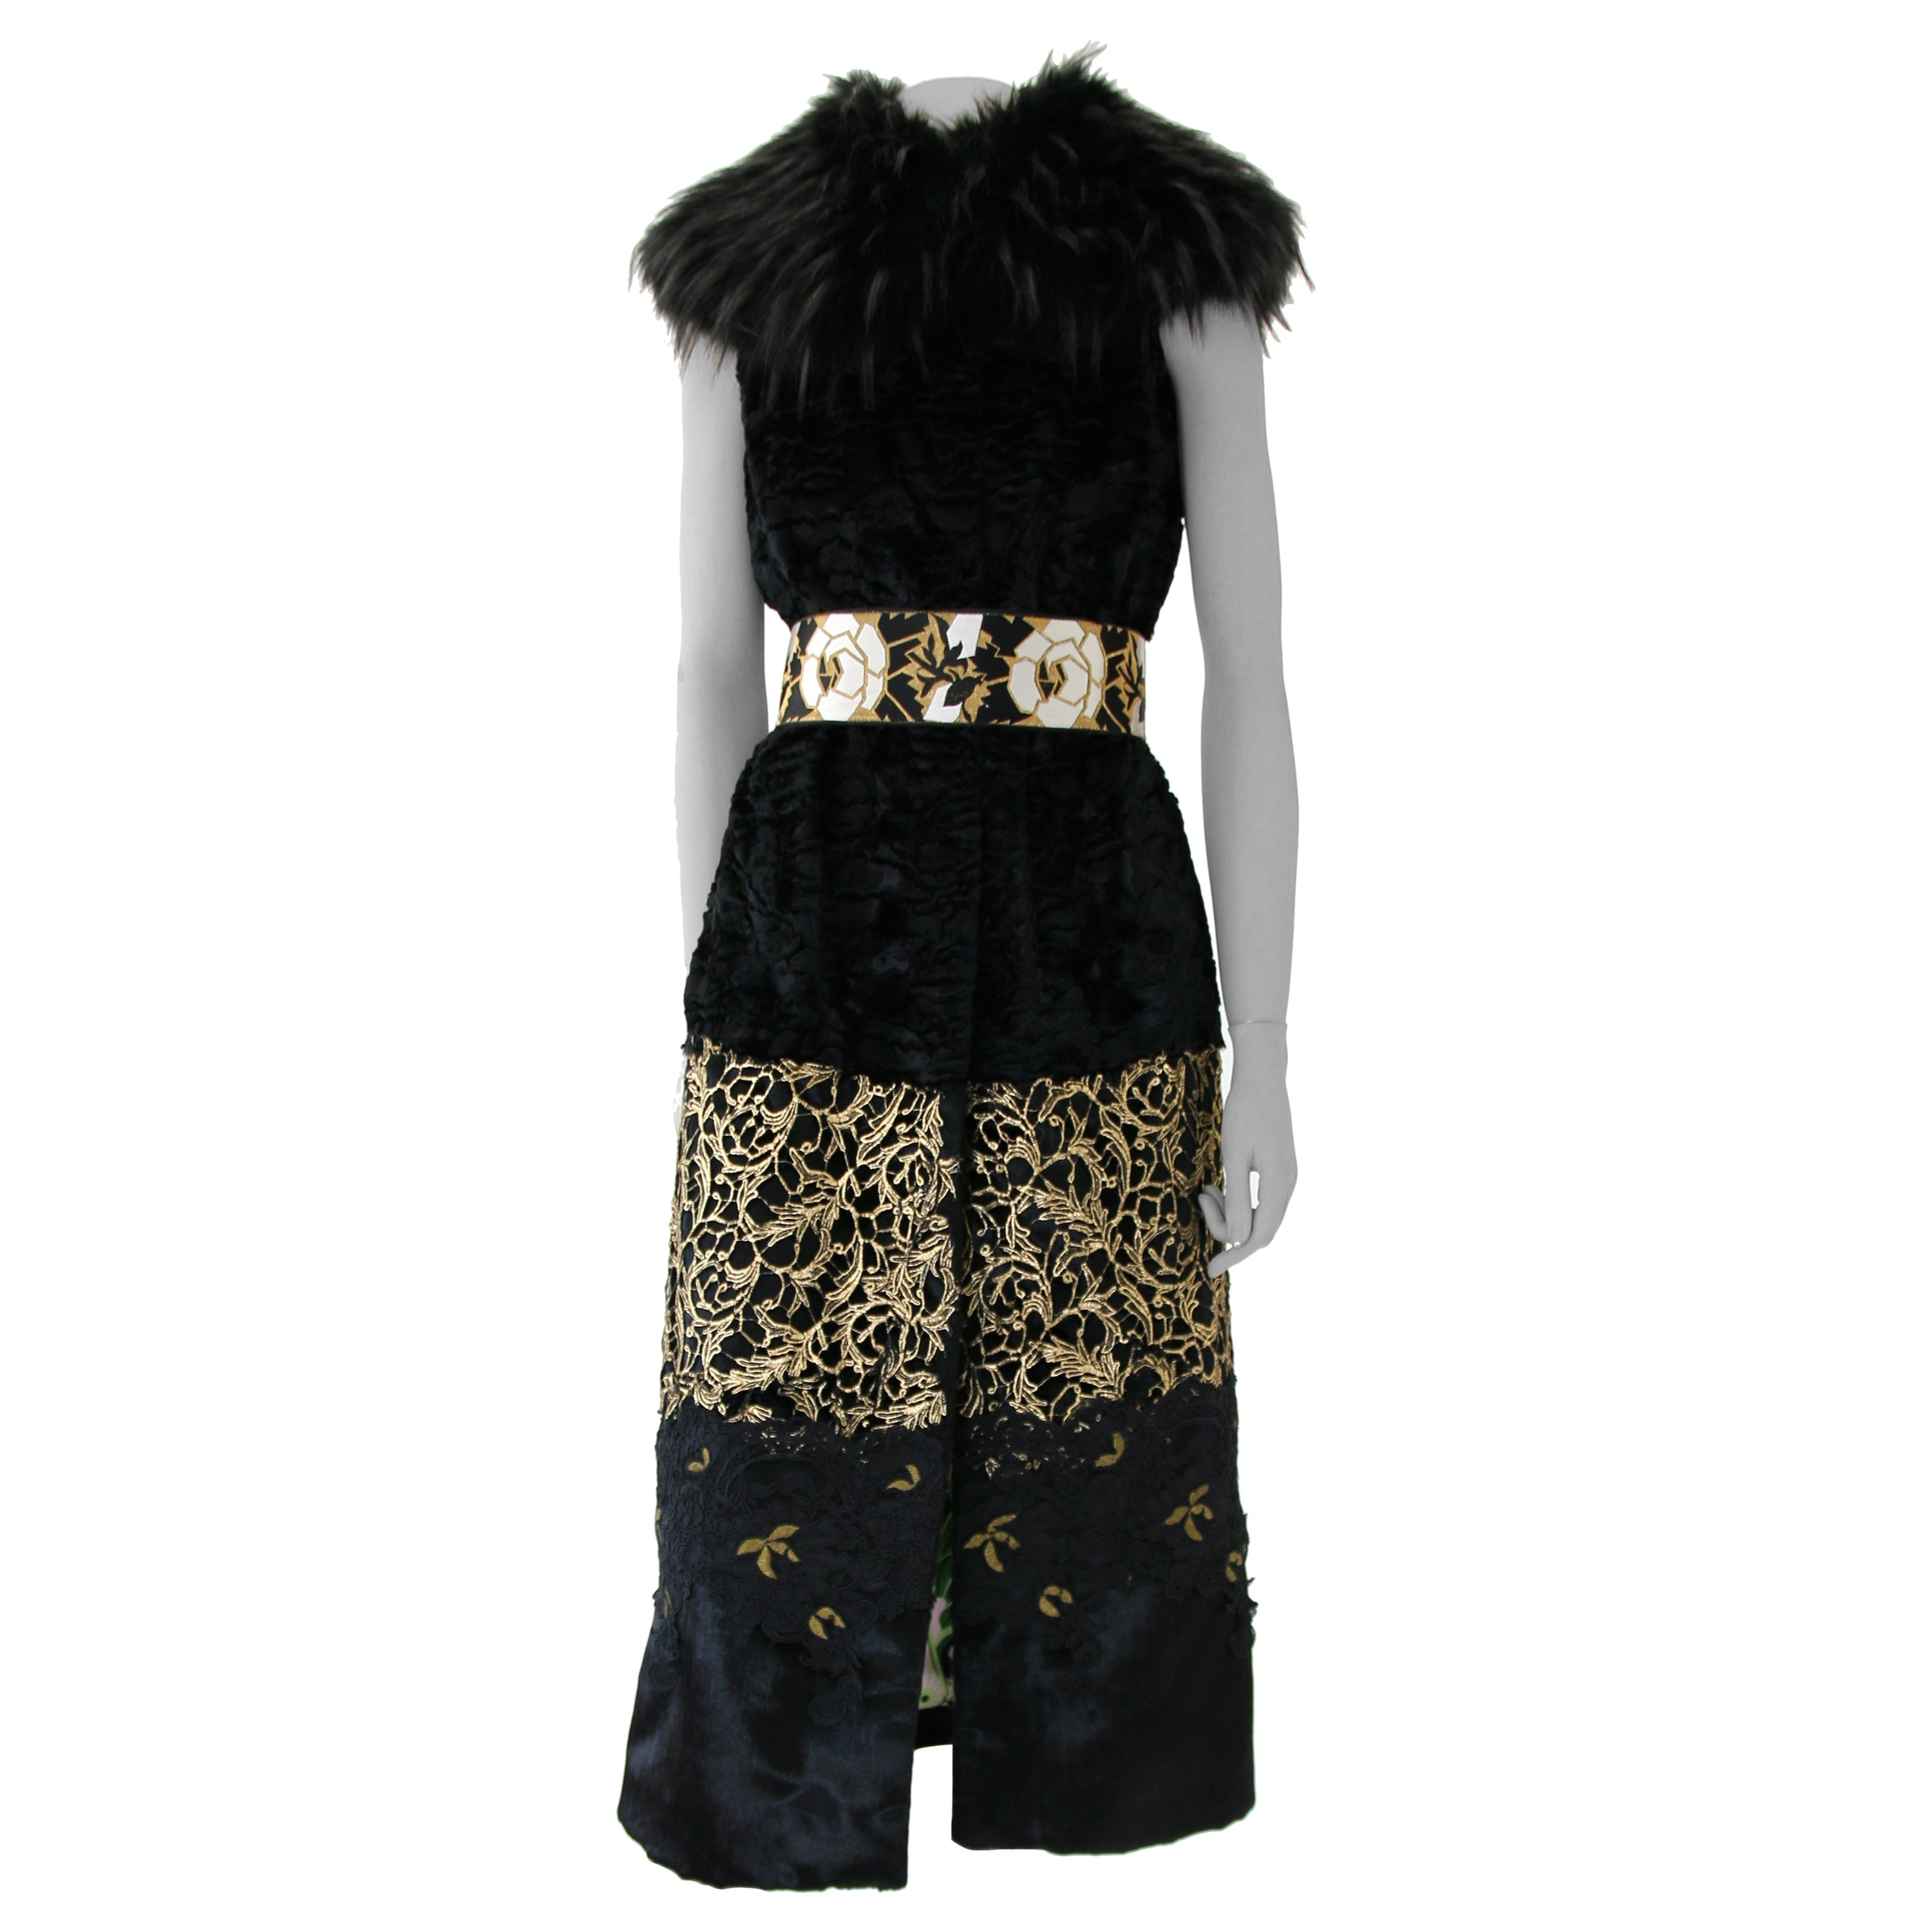 Pelush Black Faux Fur Astrakhan Vest with Gold Guipure and Faux Fox Collar - S